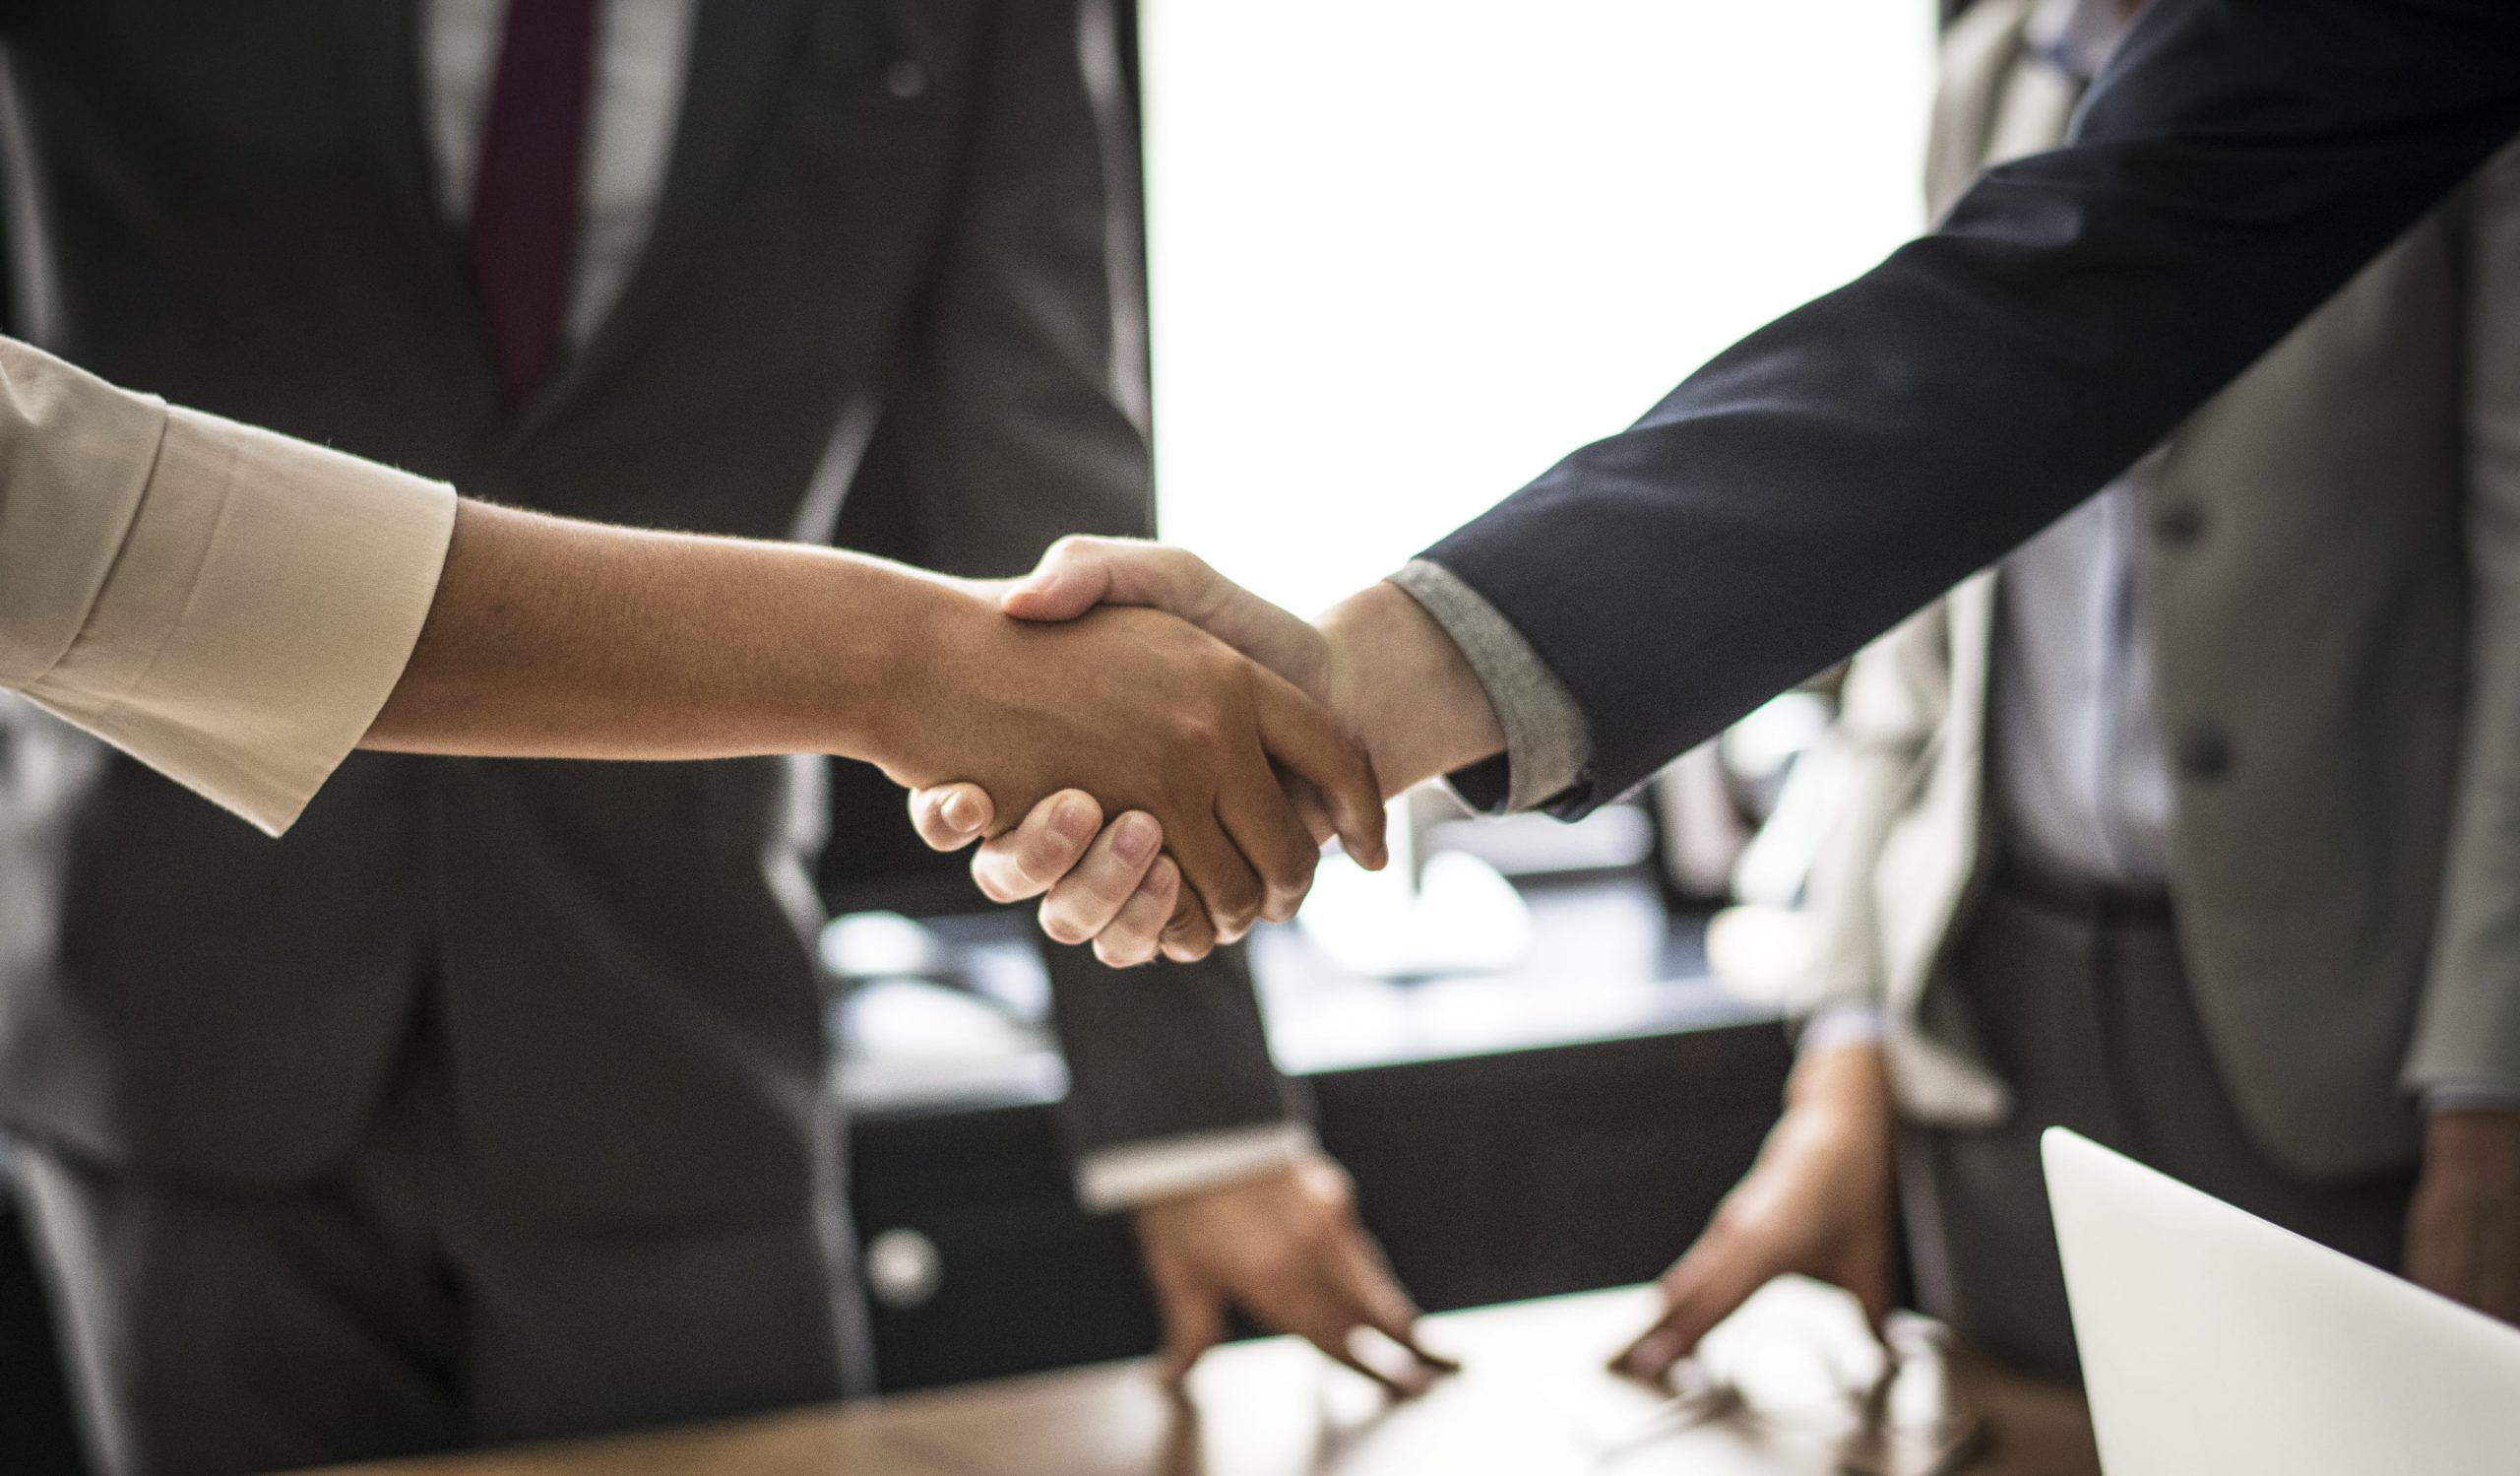 Conflict resolution - Business people shaking hands